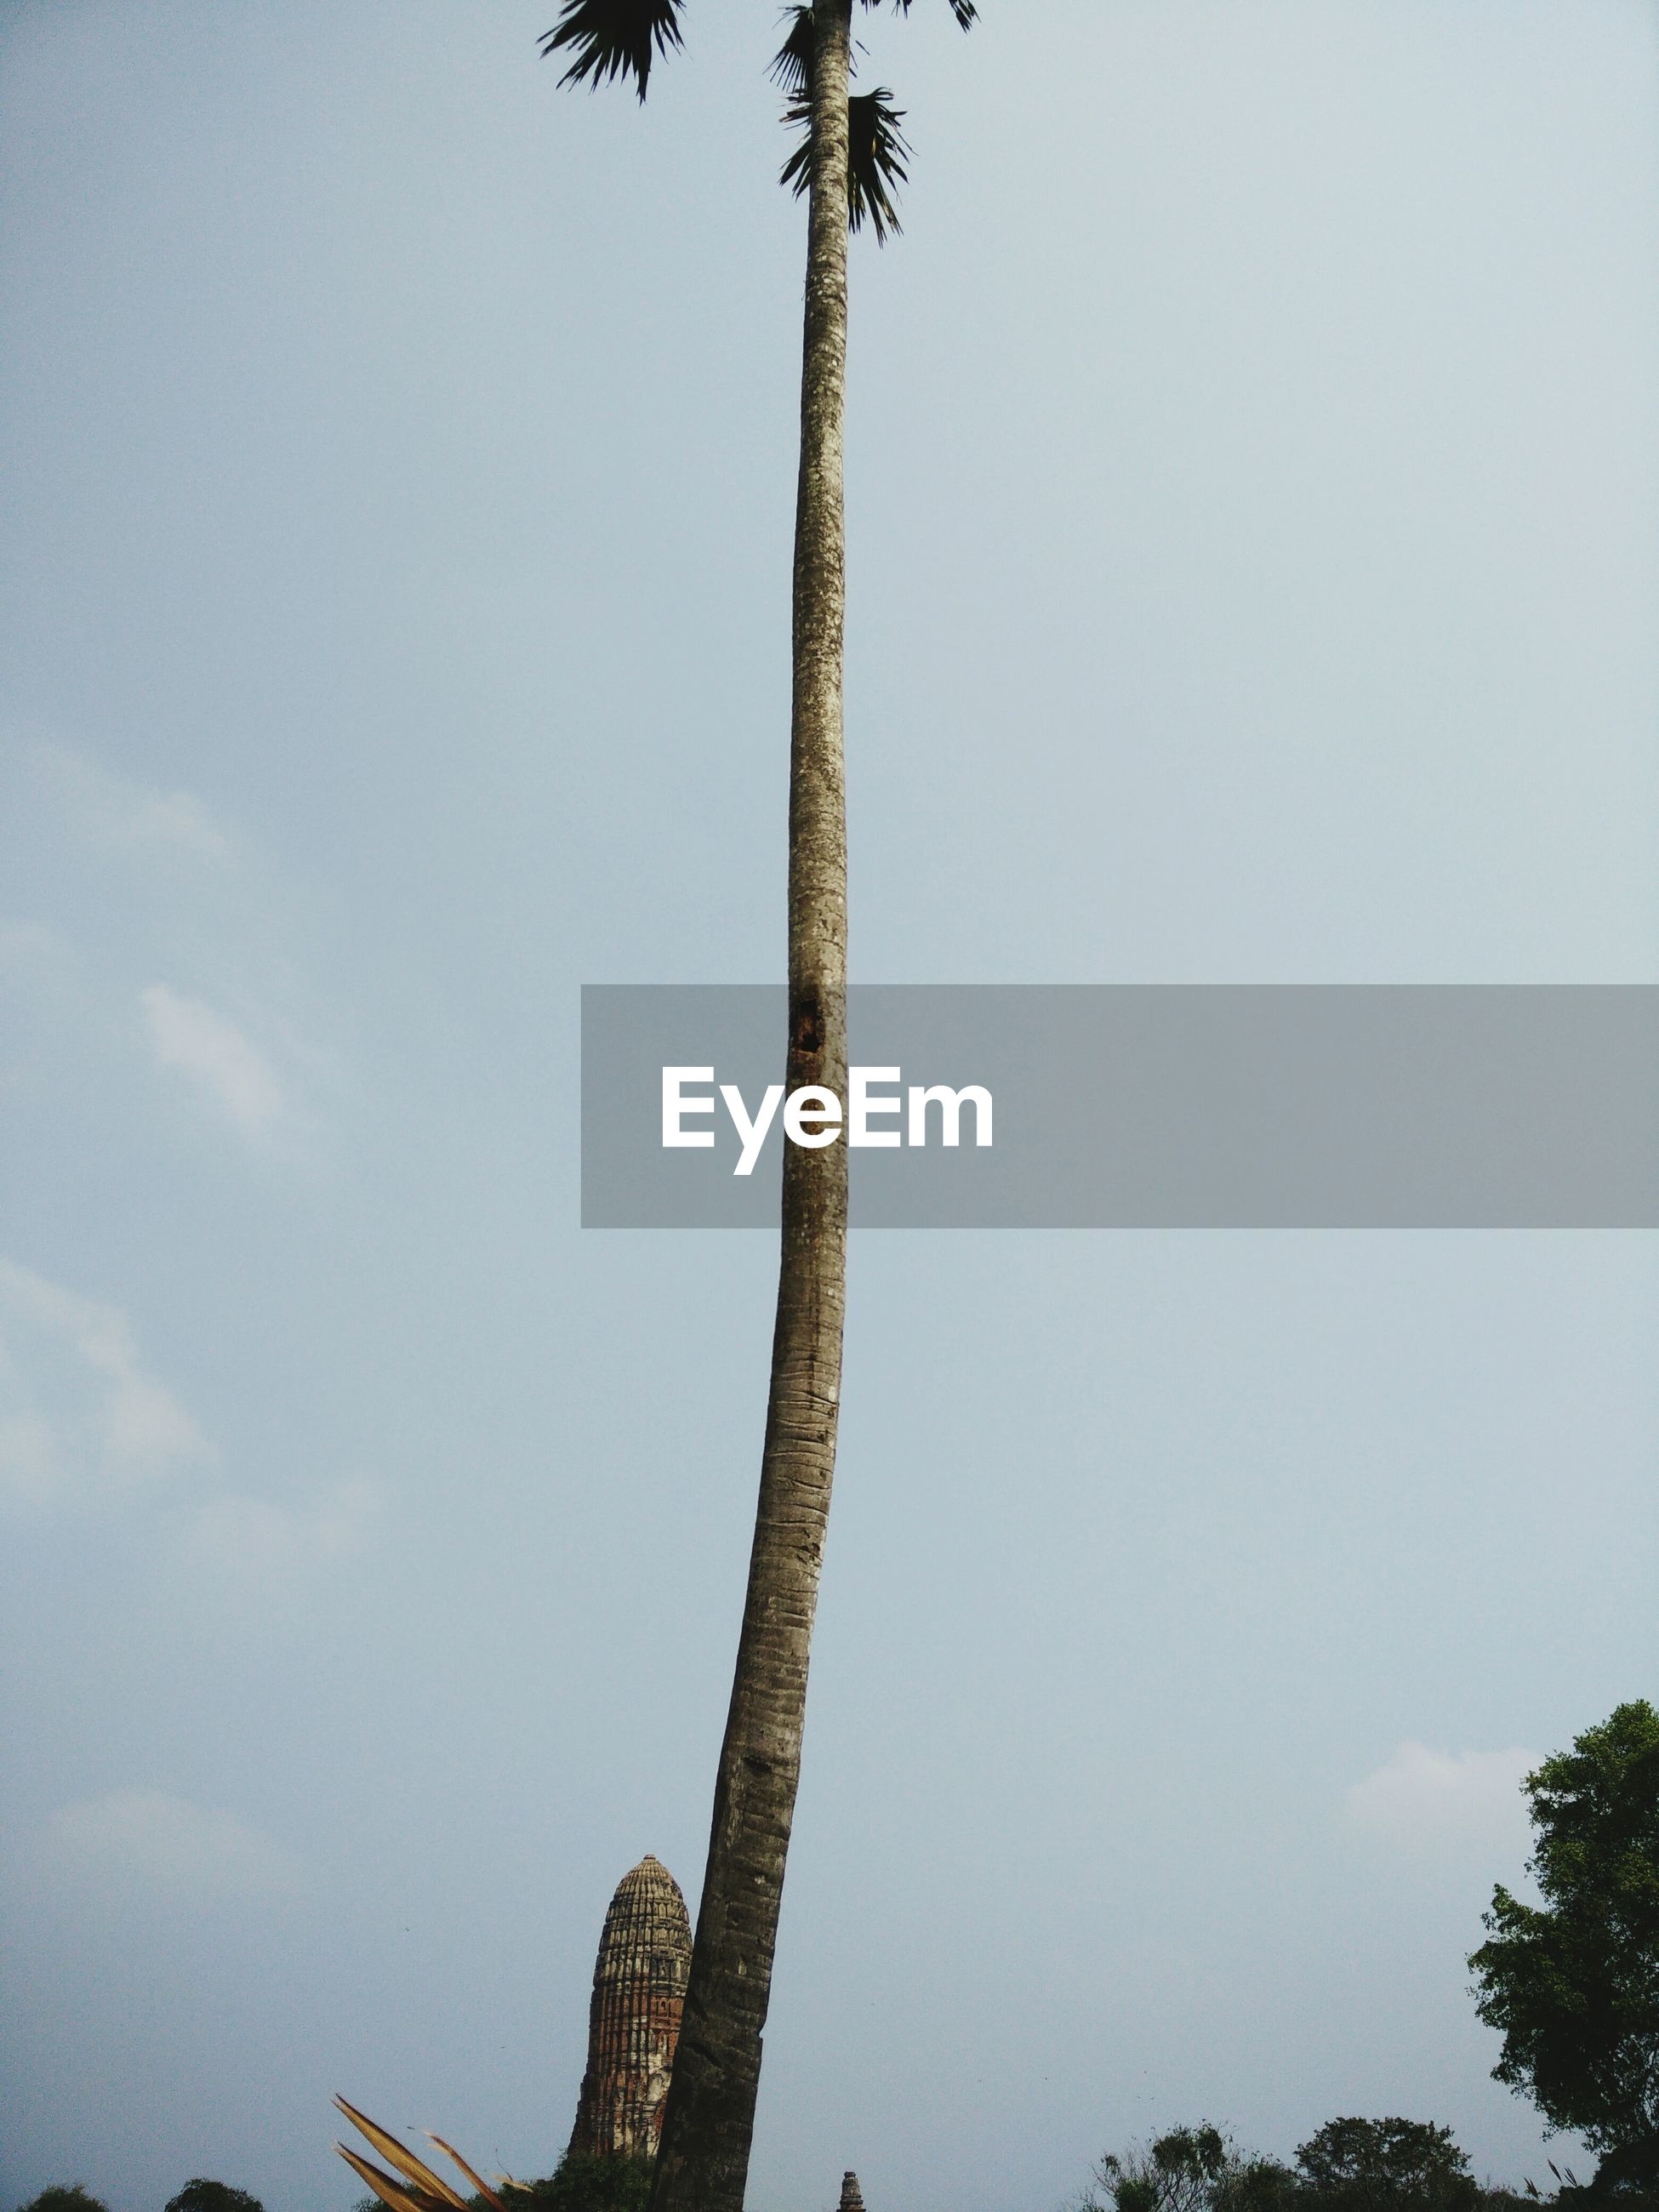 low angle view, tree, clear sky, growth, sky, nature, tree trunk, branch, tranquility, palm tree, copy space, day, beauty in nature, outdoors, no people, silhouette, high section, plant, tall - high, growing